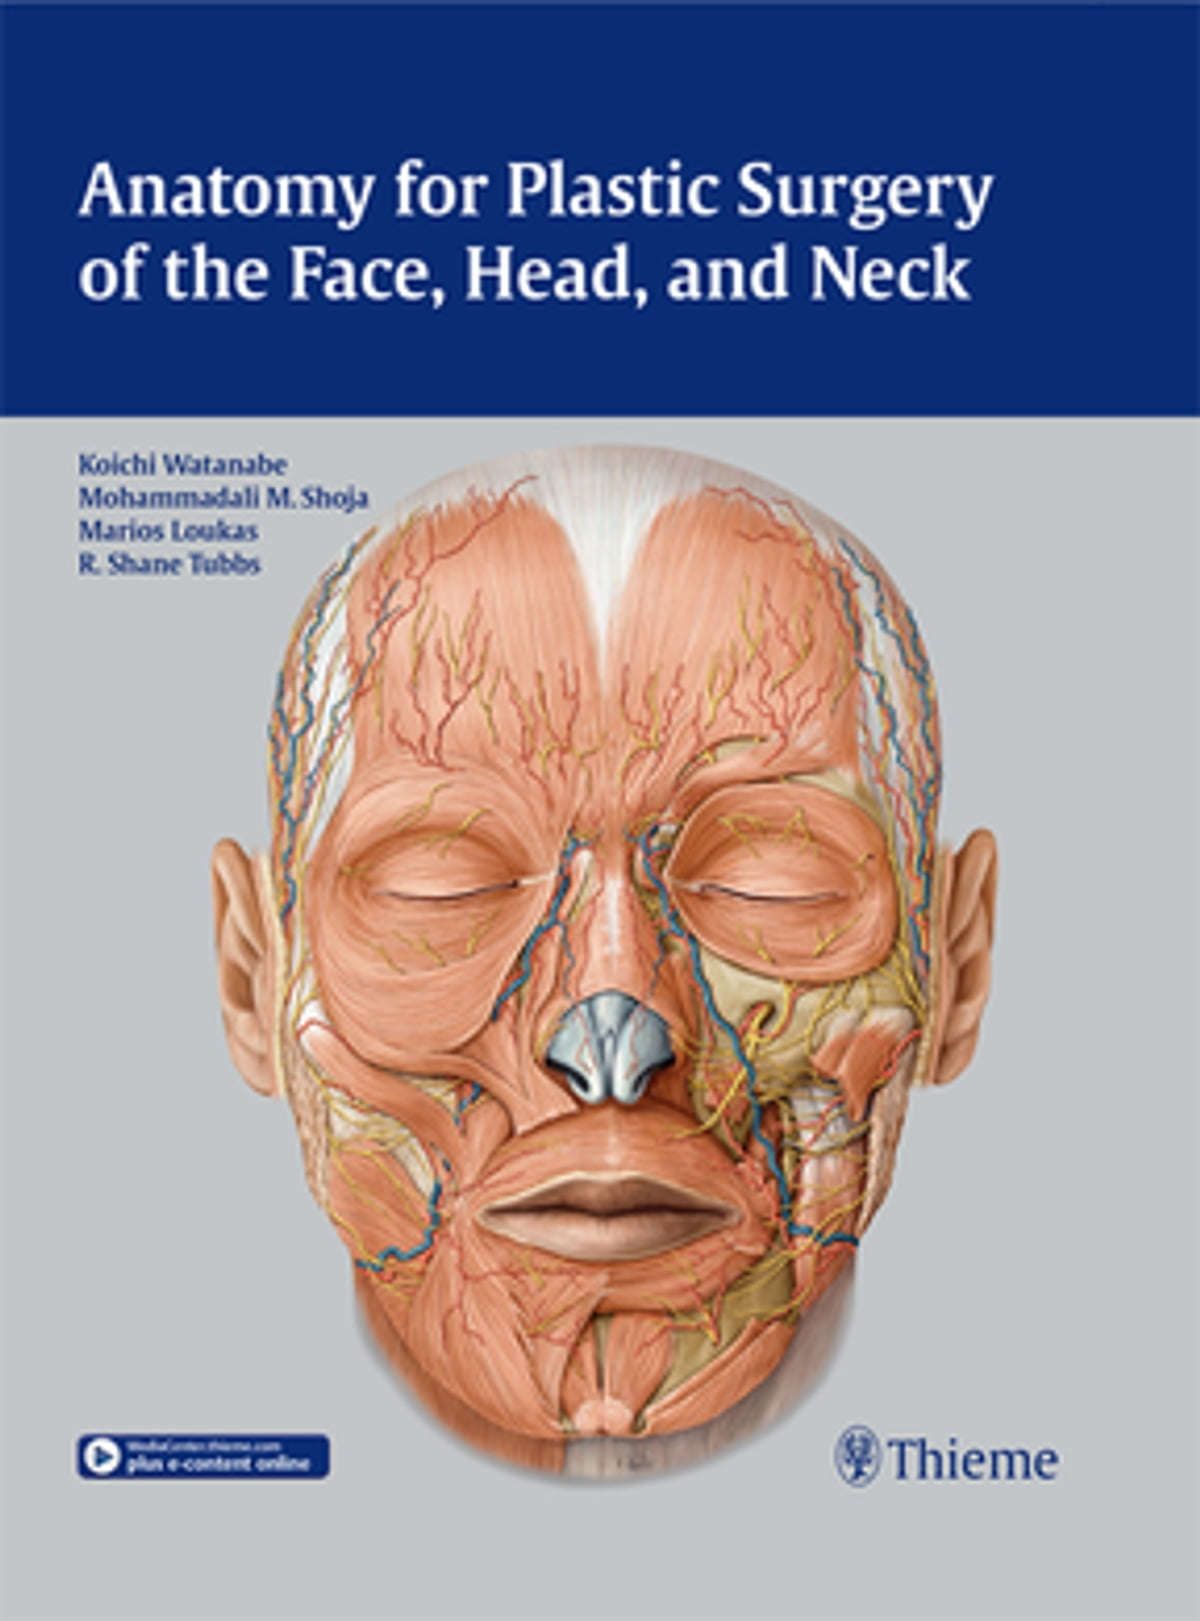 Anatomy For Plastic Surgery Of The Face Head And Neck Ebook By